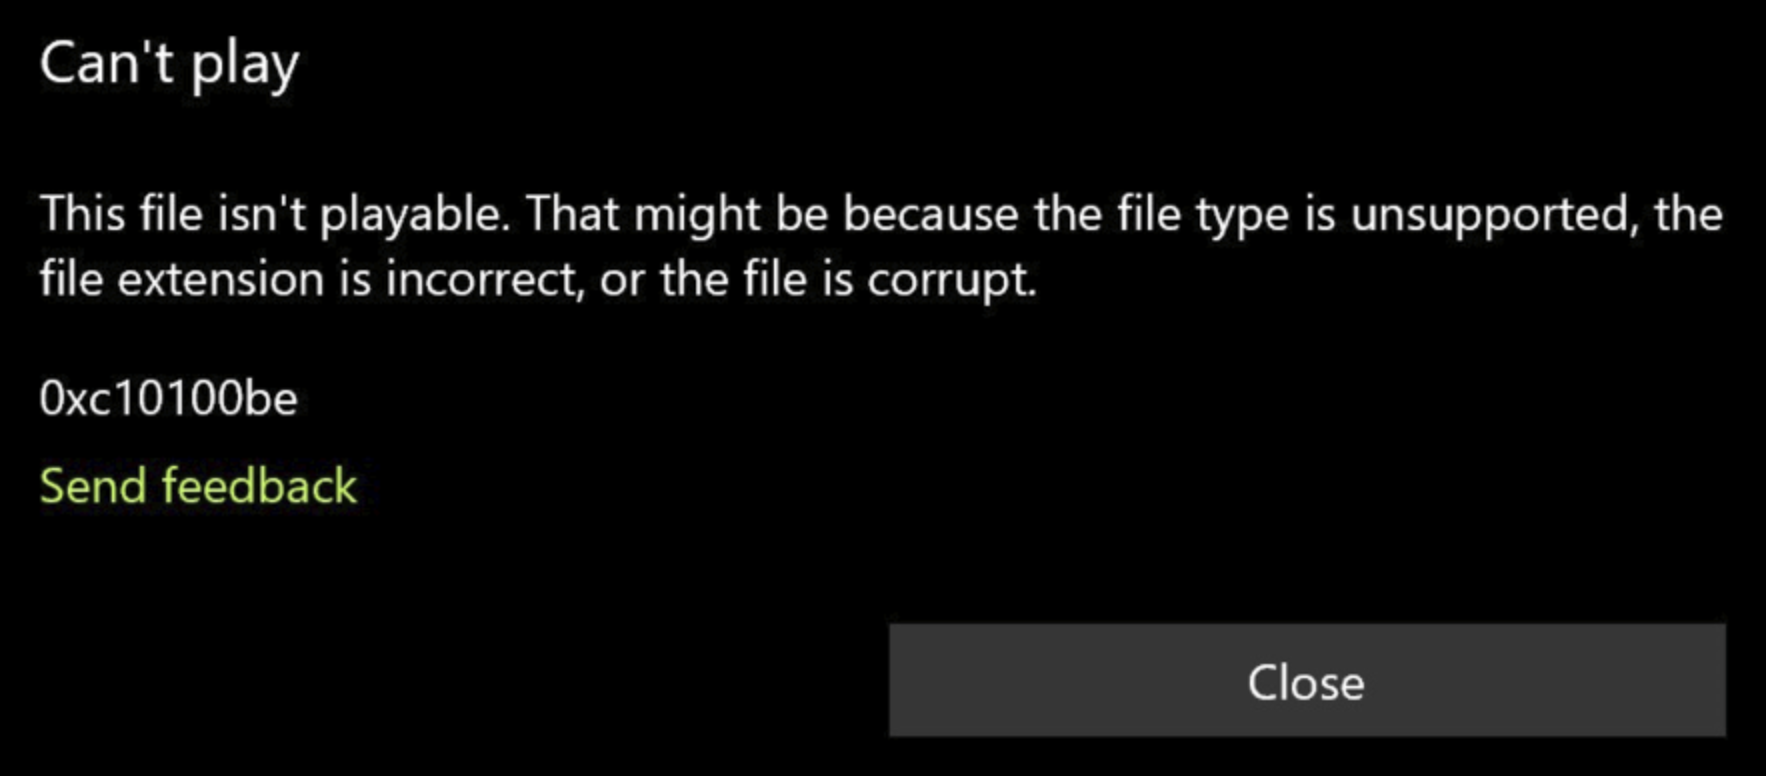 Can't play. This file isn't playable. That might be because the file type is unsupported, the file extension is incorrect, or the file is corrupt.